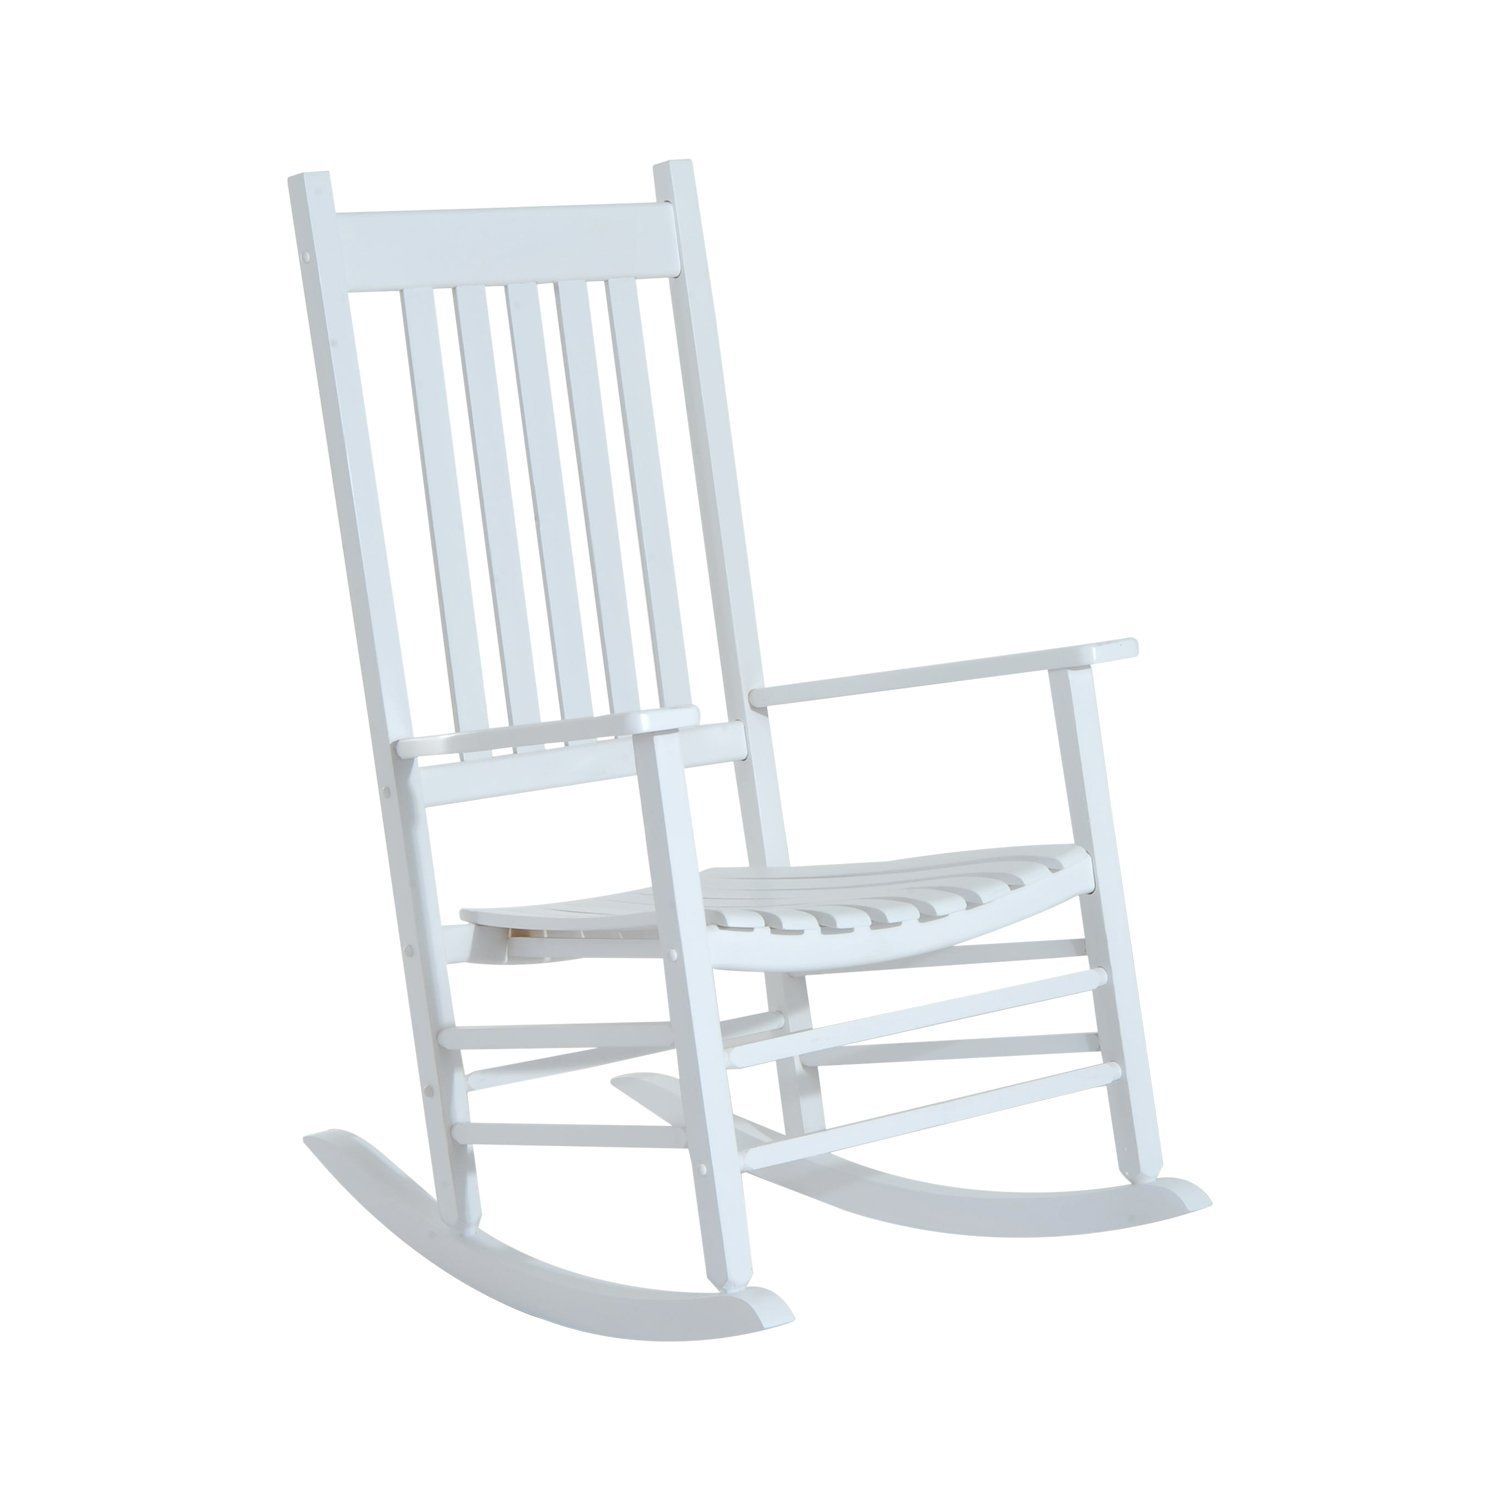 Outsunny Porch Rocking Chair - Outdoor Patio Wooden Rocker - White by Outsunny